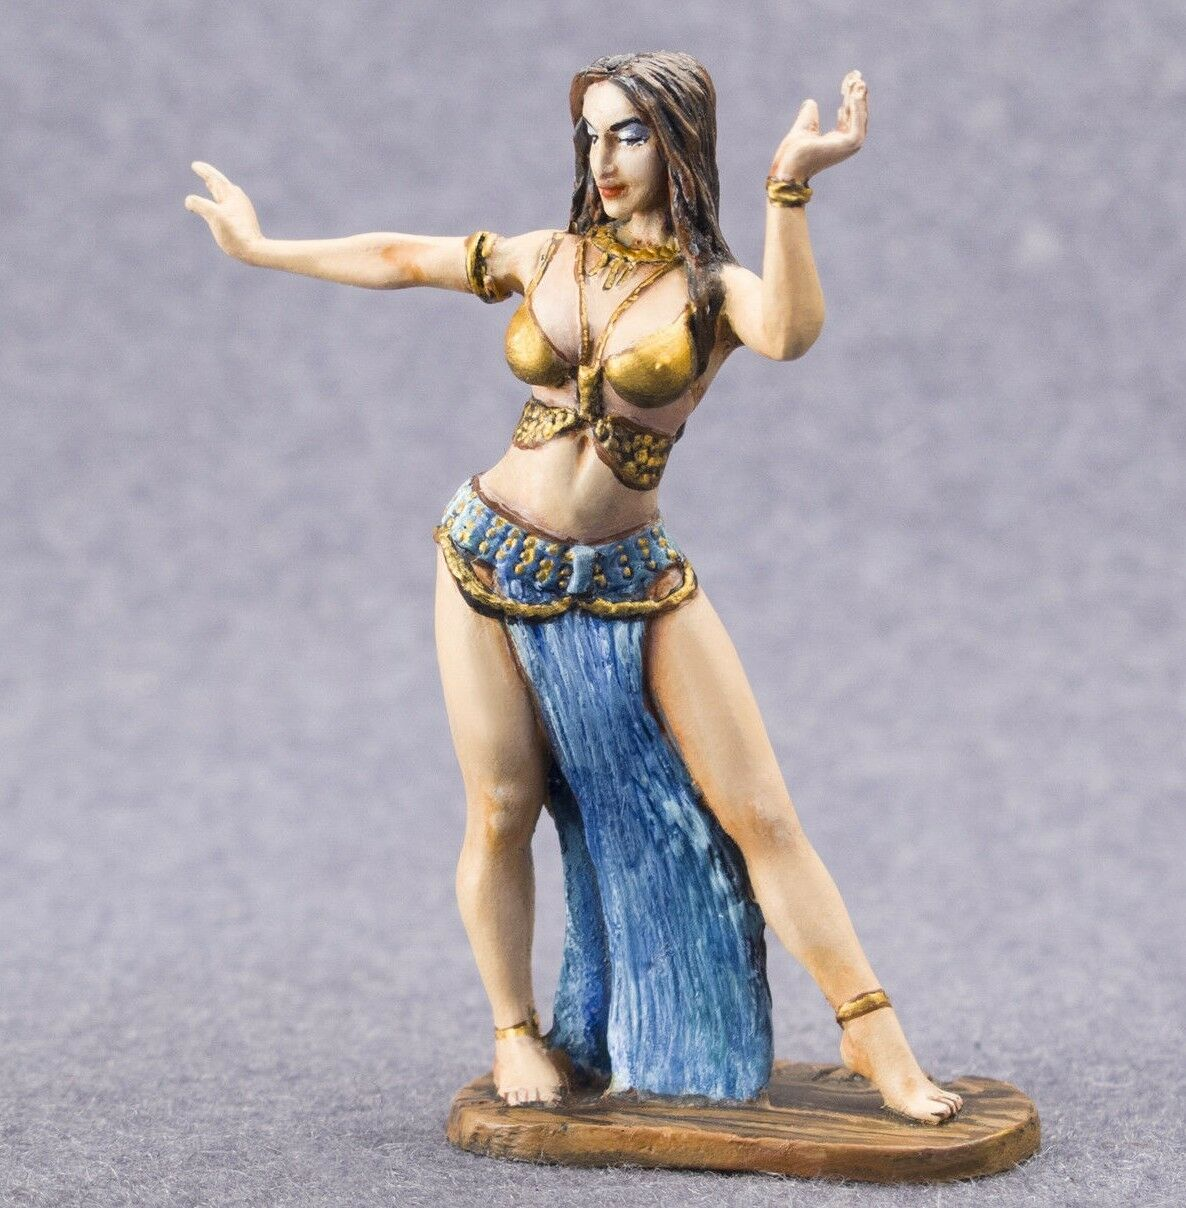 Pained Toy Soldiers Miniature Dancer Female 1 32 metal figure 54mm girl